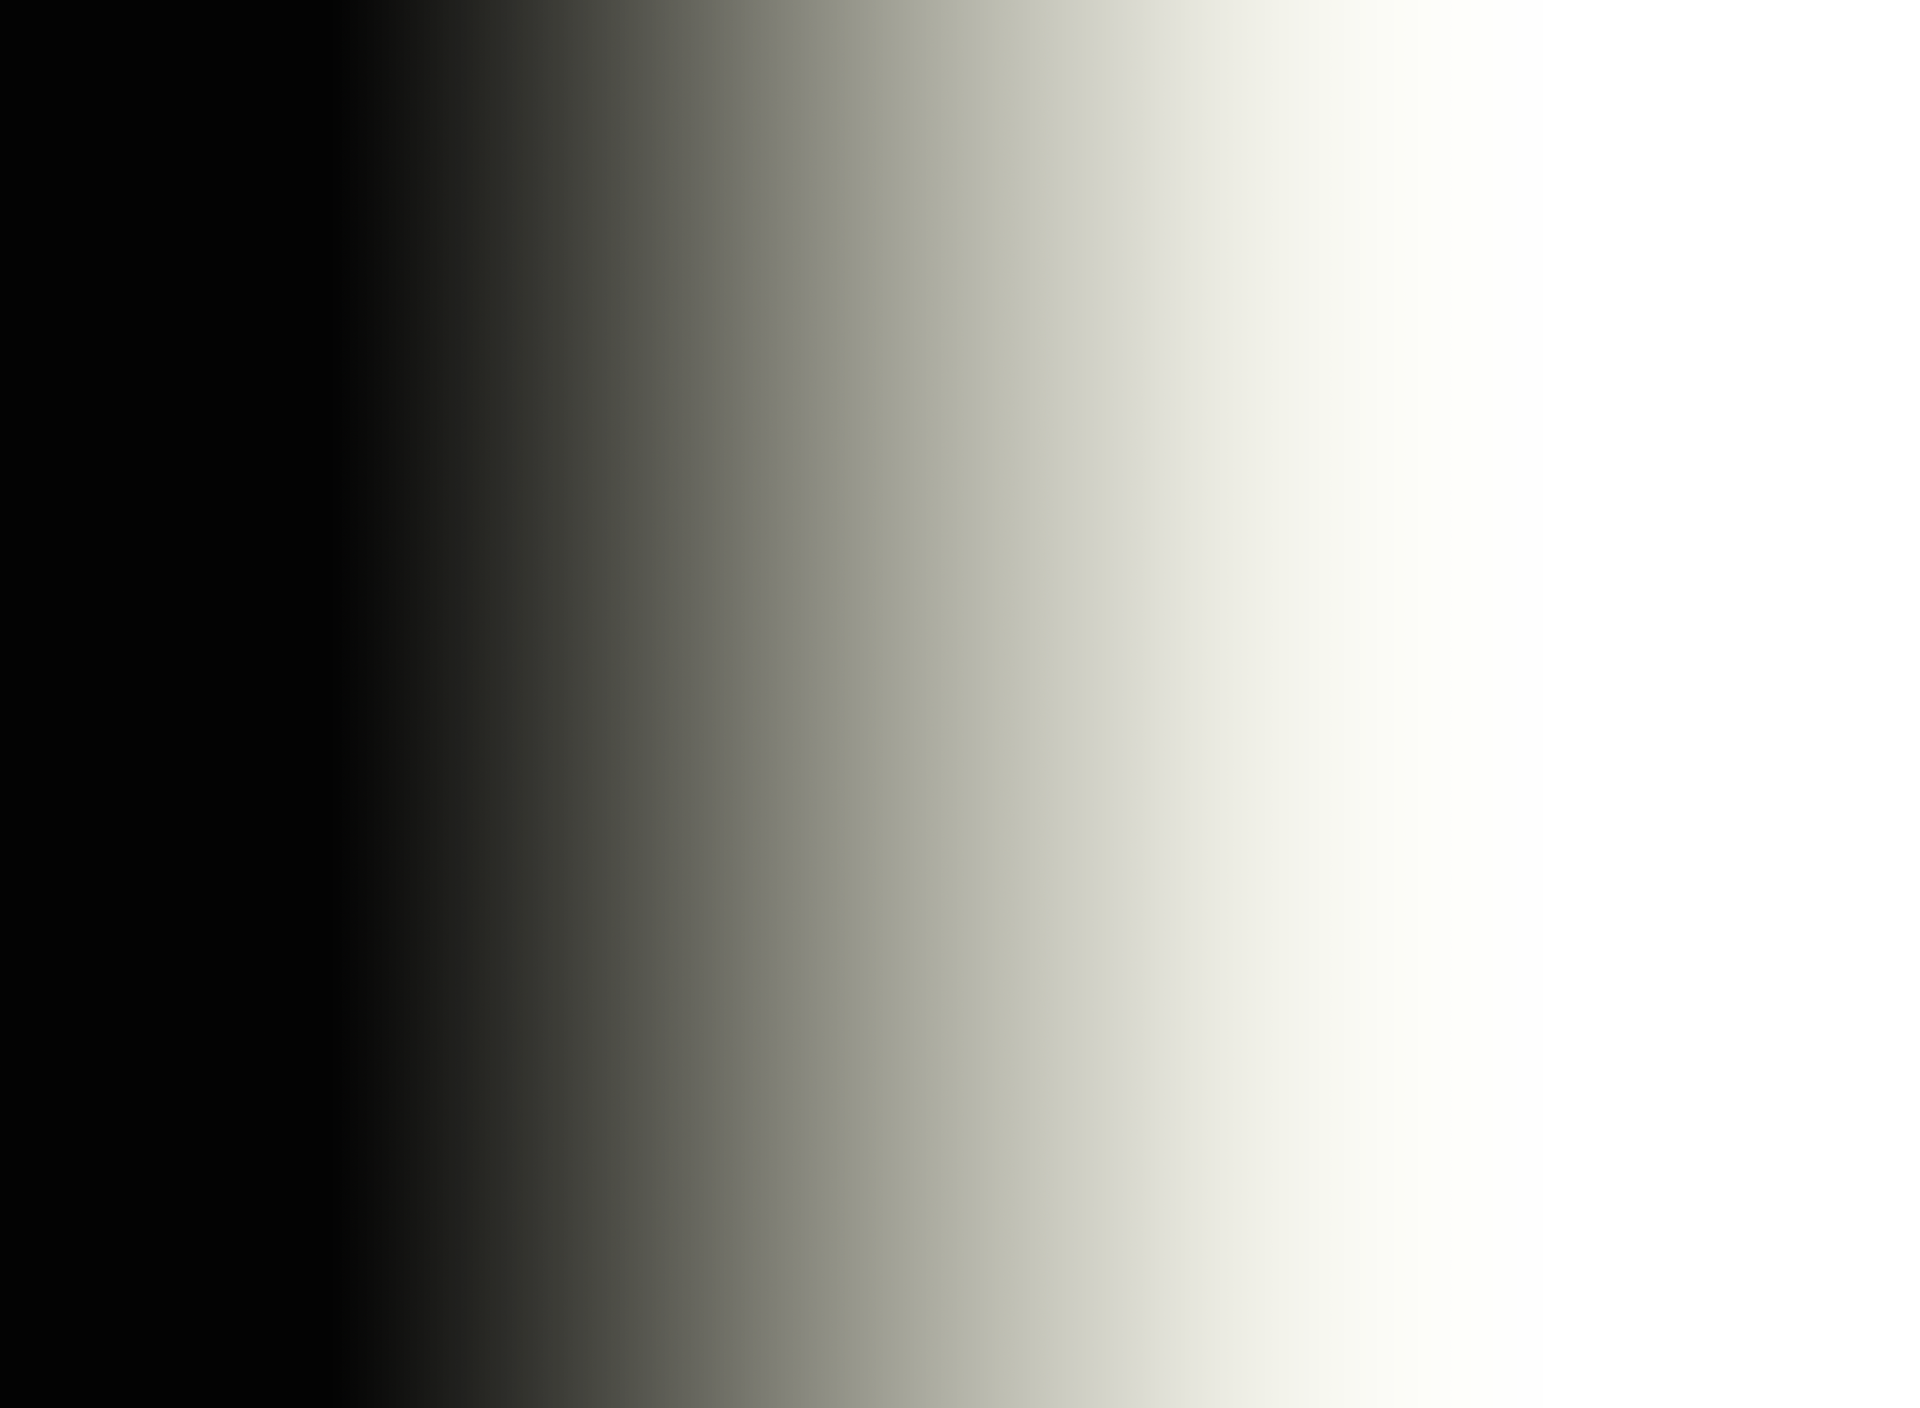 Transparent shading black gradient. Gradients now k